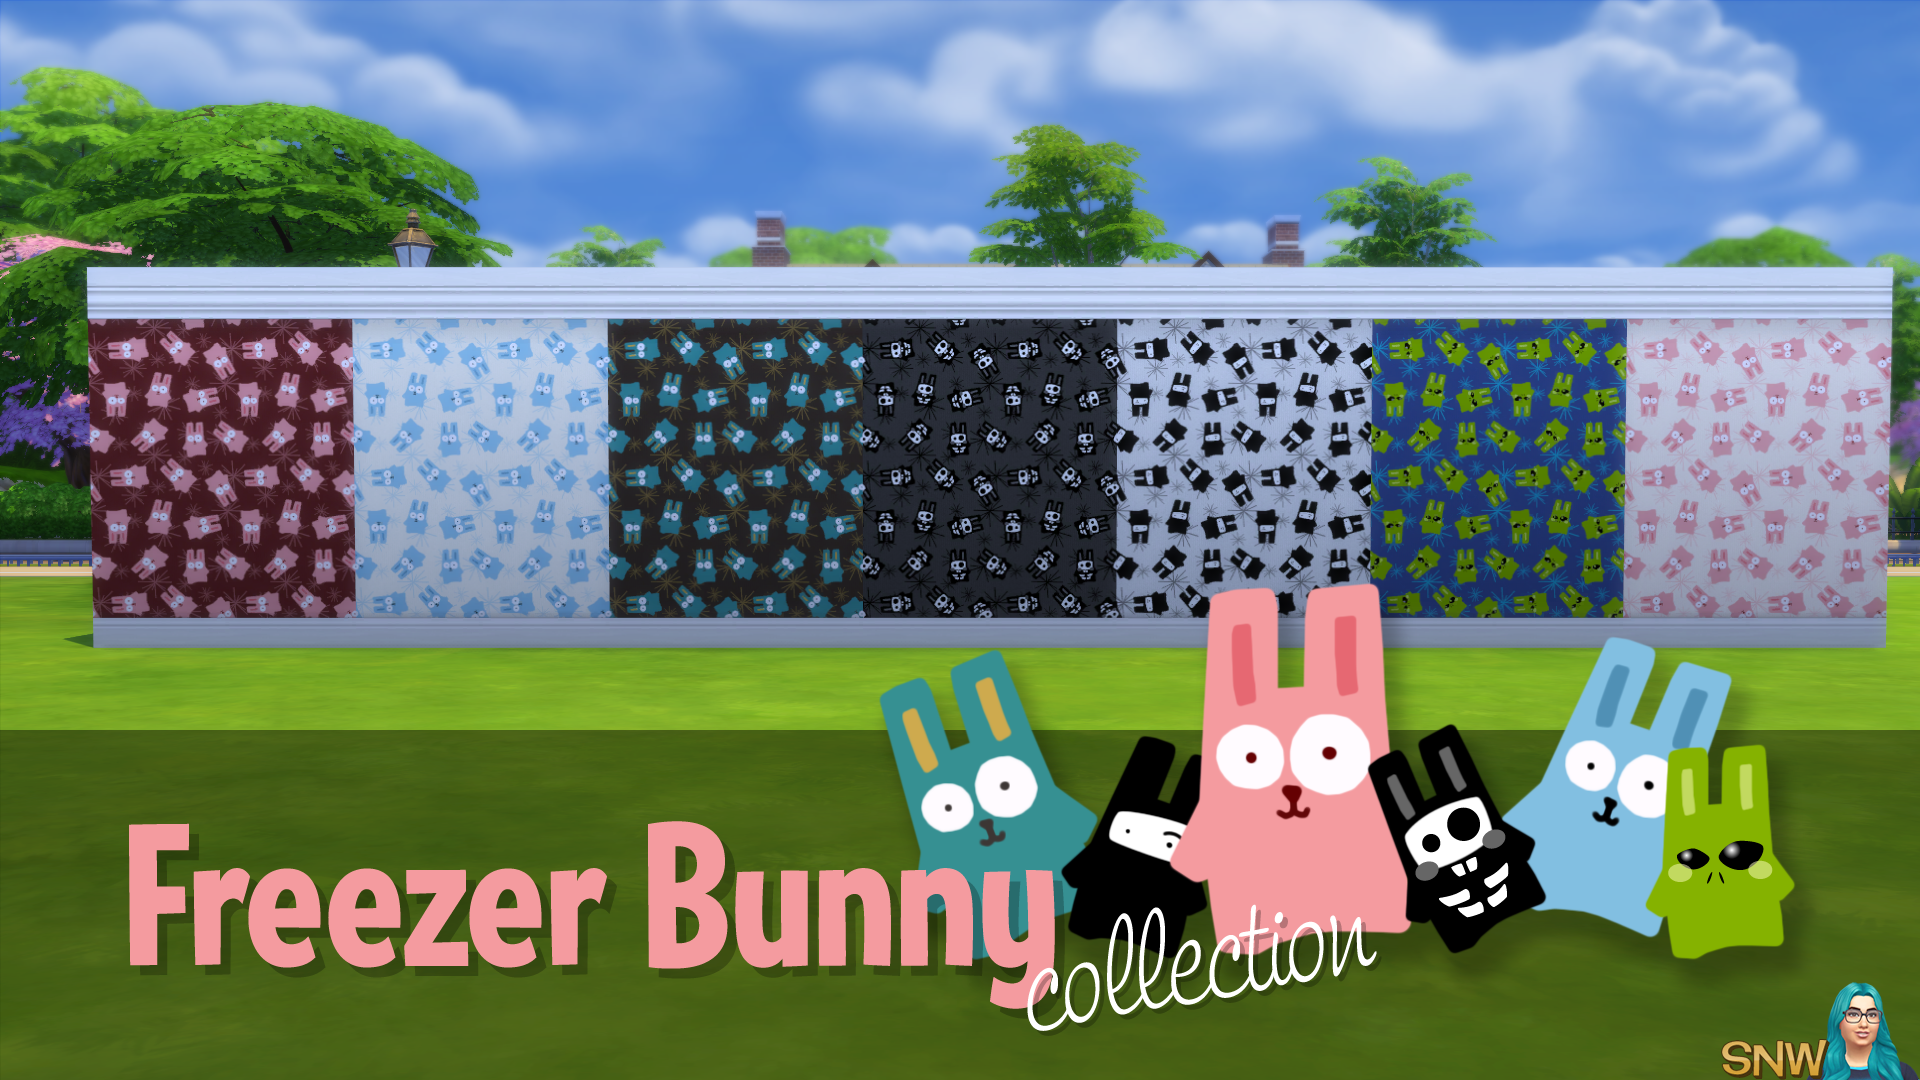 Freezer Bunny Collection: Big Bunnies/Starburst Wallpapers